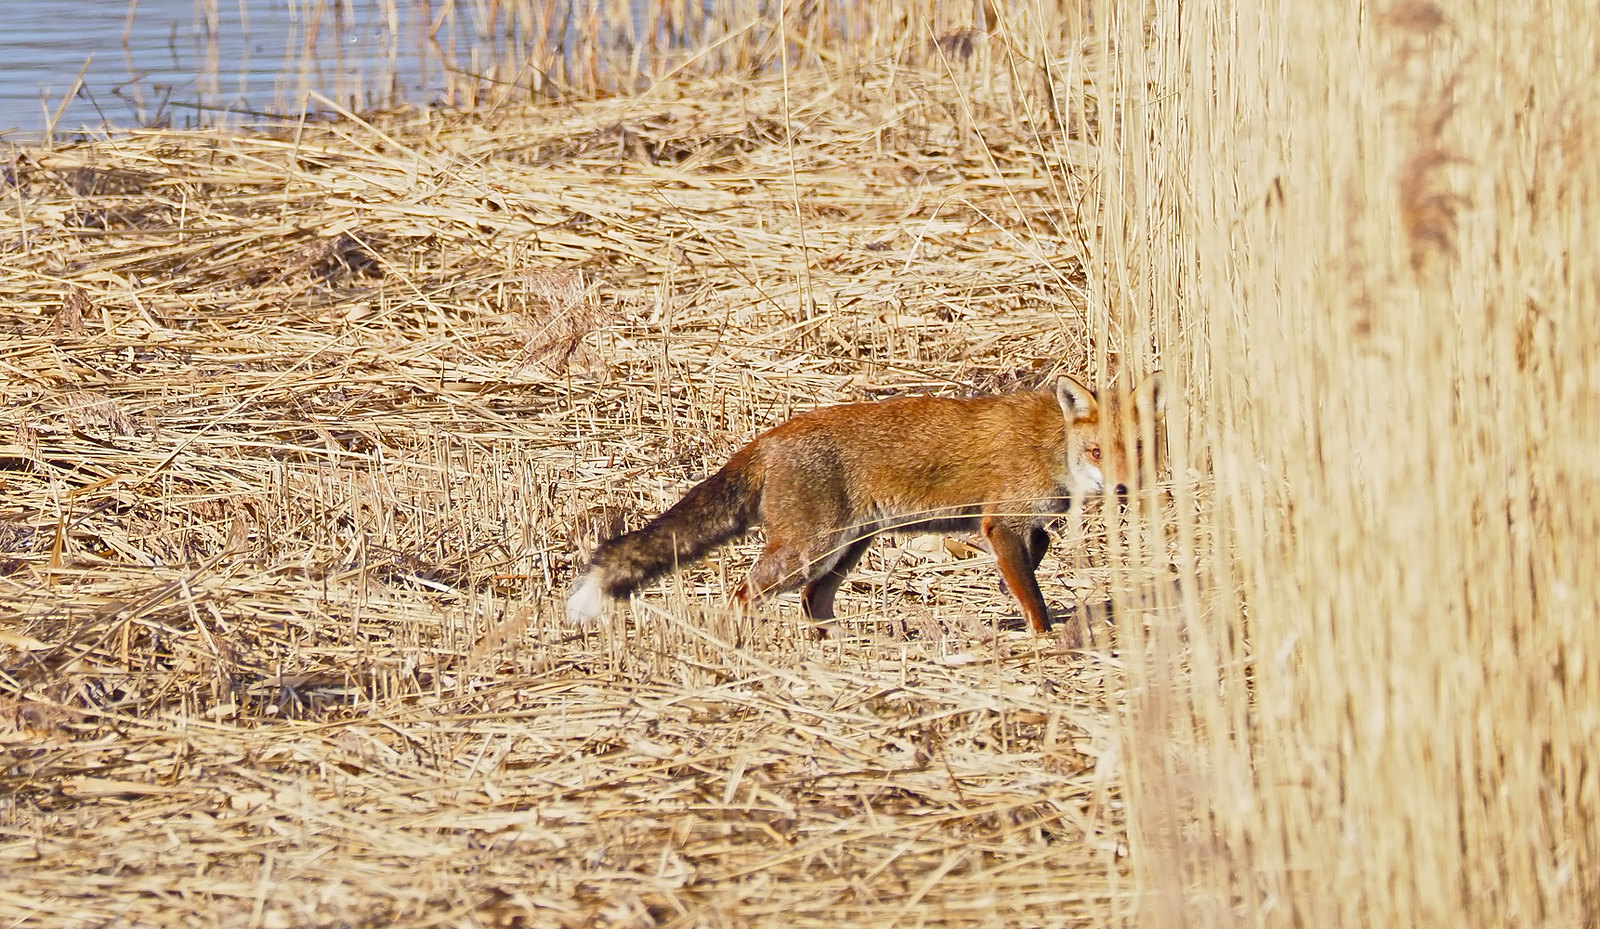 Fox in a reed bed - that look!